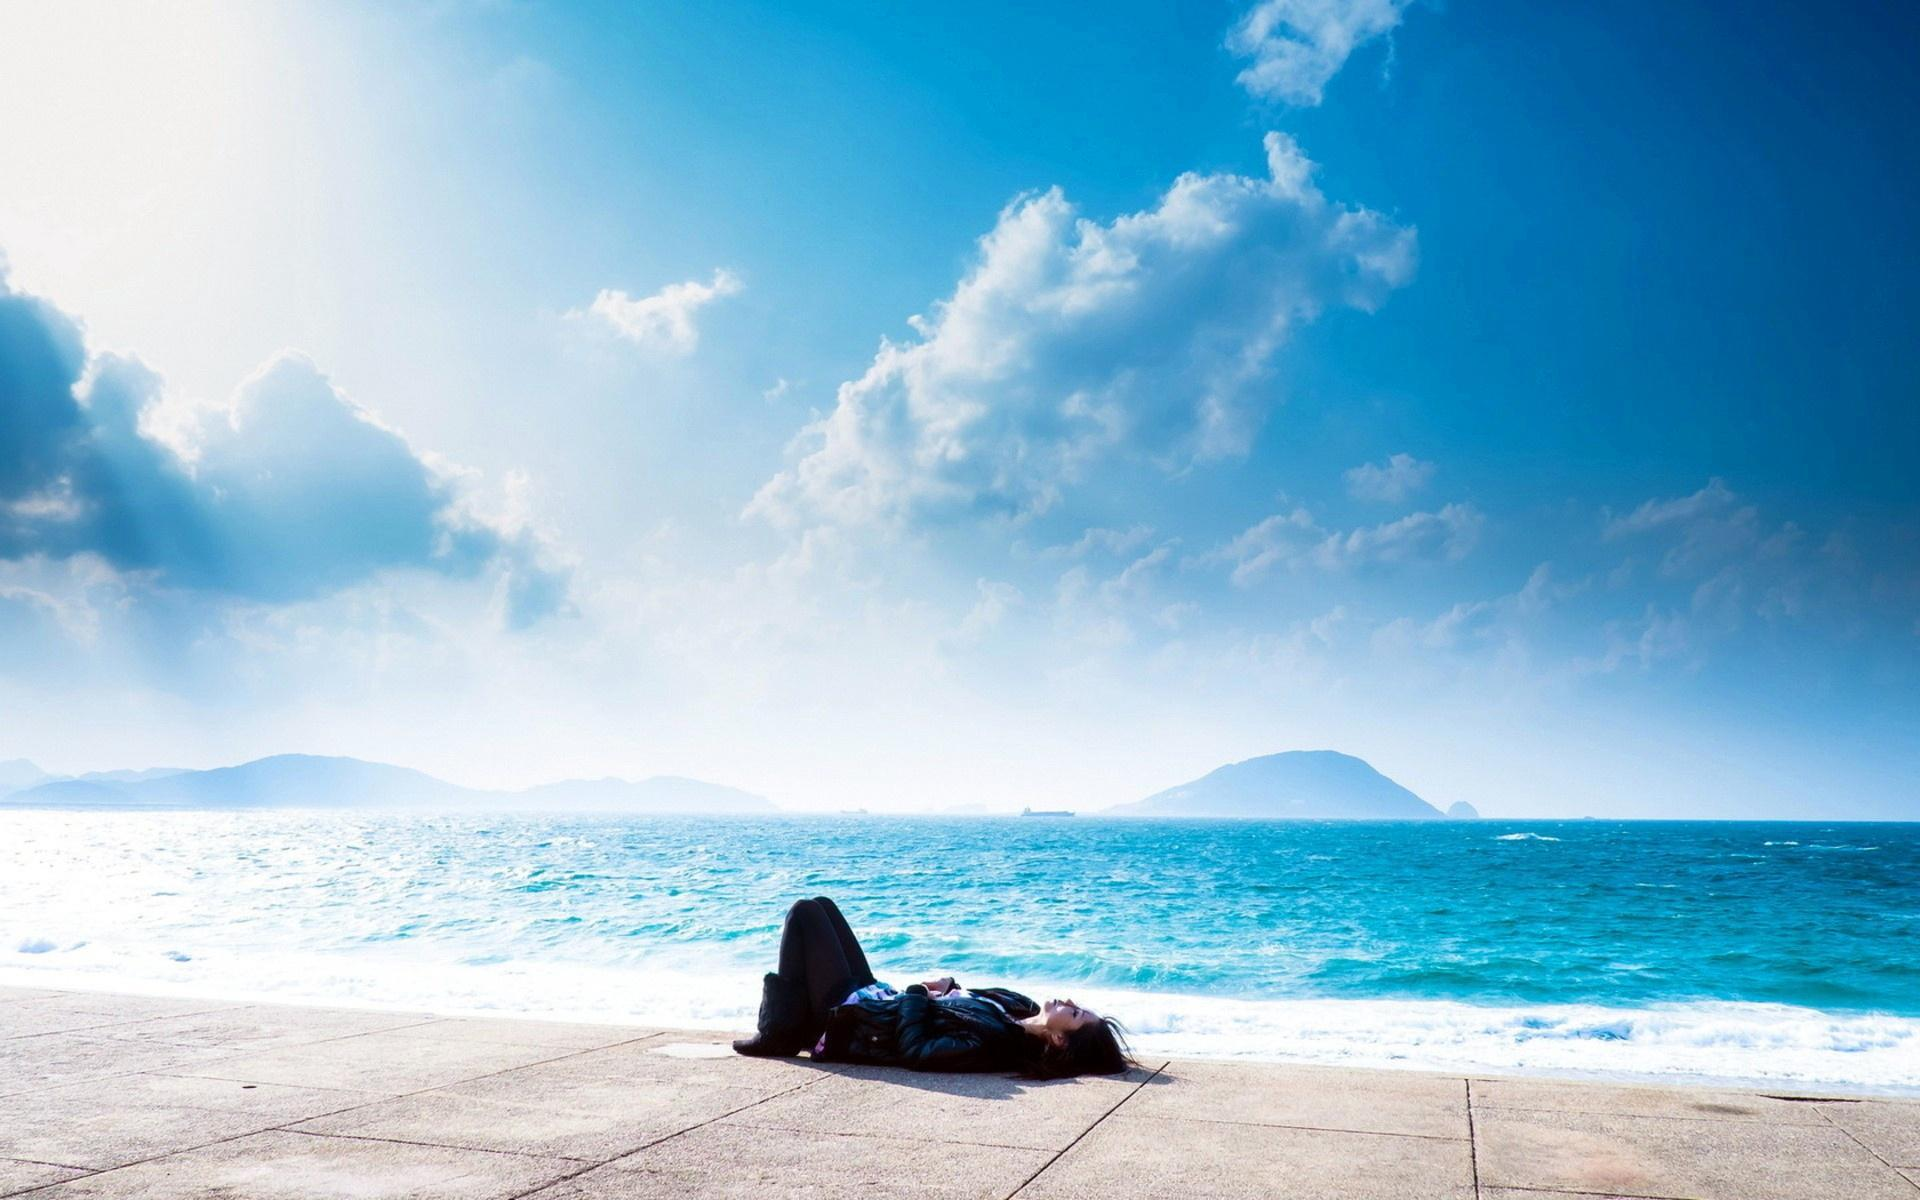 Relaxing Wallpaper Backgrounds | HD Wallpapers | Pinterest .